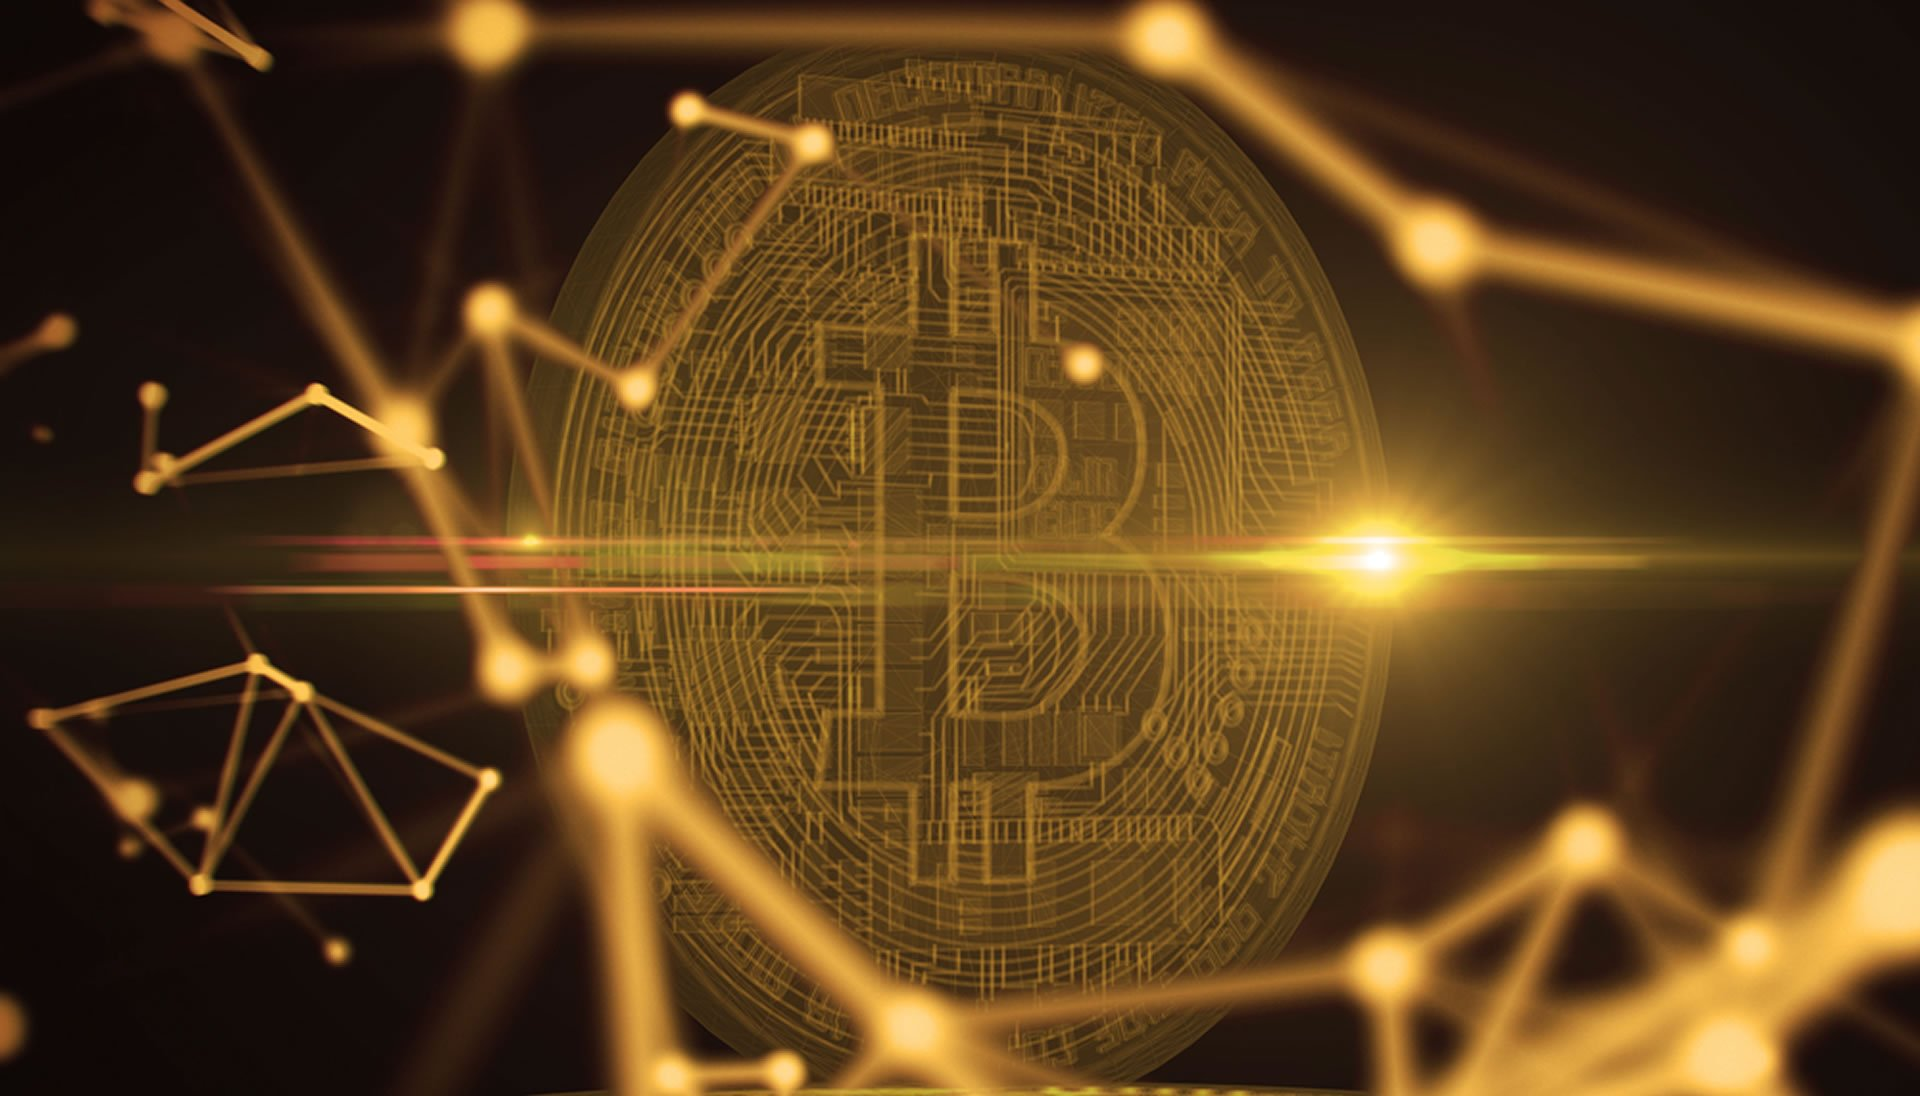 Bitcoin Network Hash Rate Hits New High Over 80EH/s - NewsBTC